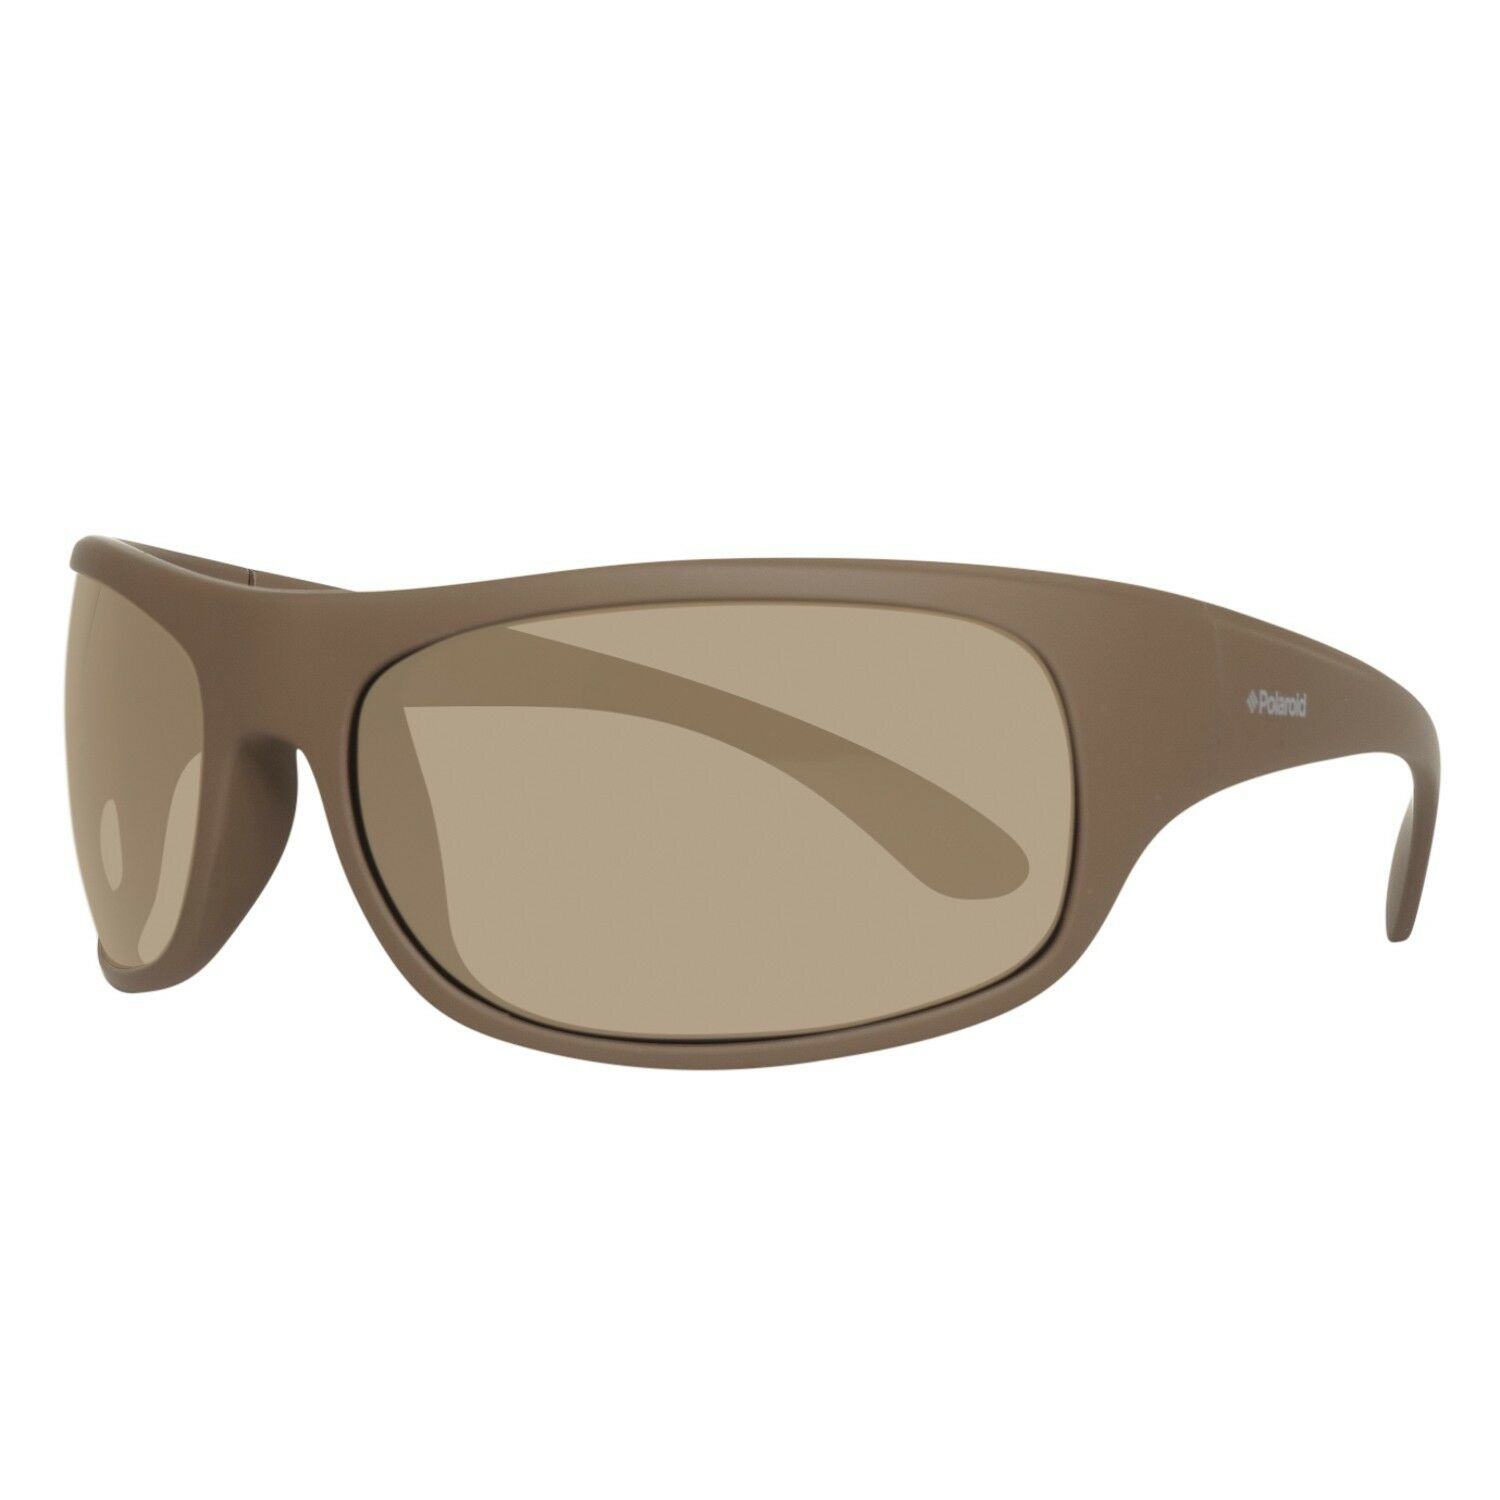 cce4393afbde Details about Polaroid Sunglasses Polarised P7886J K30 Brown Brown Polarised